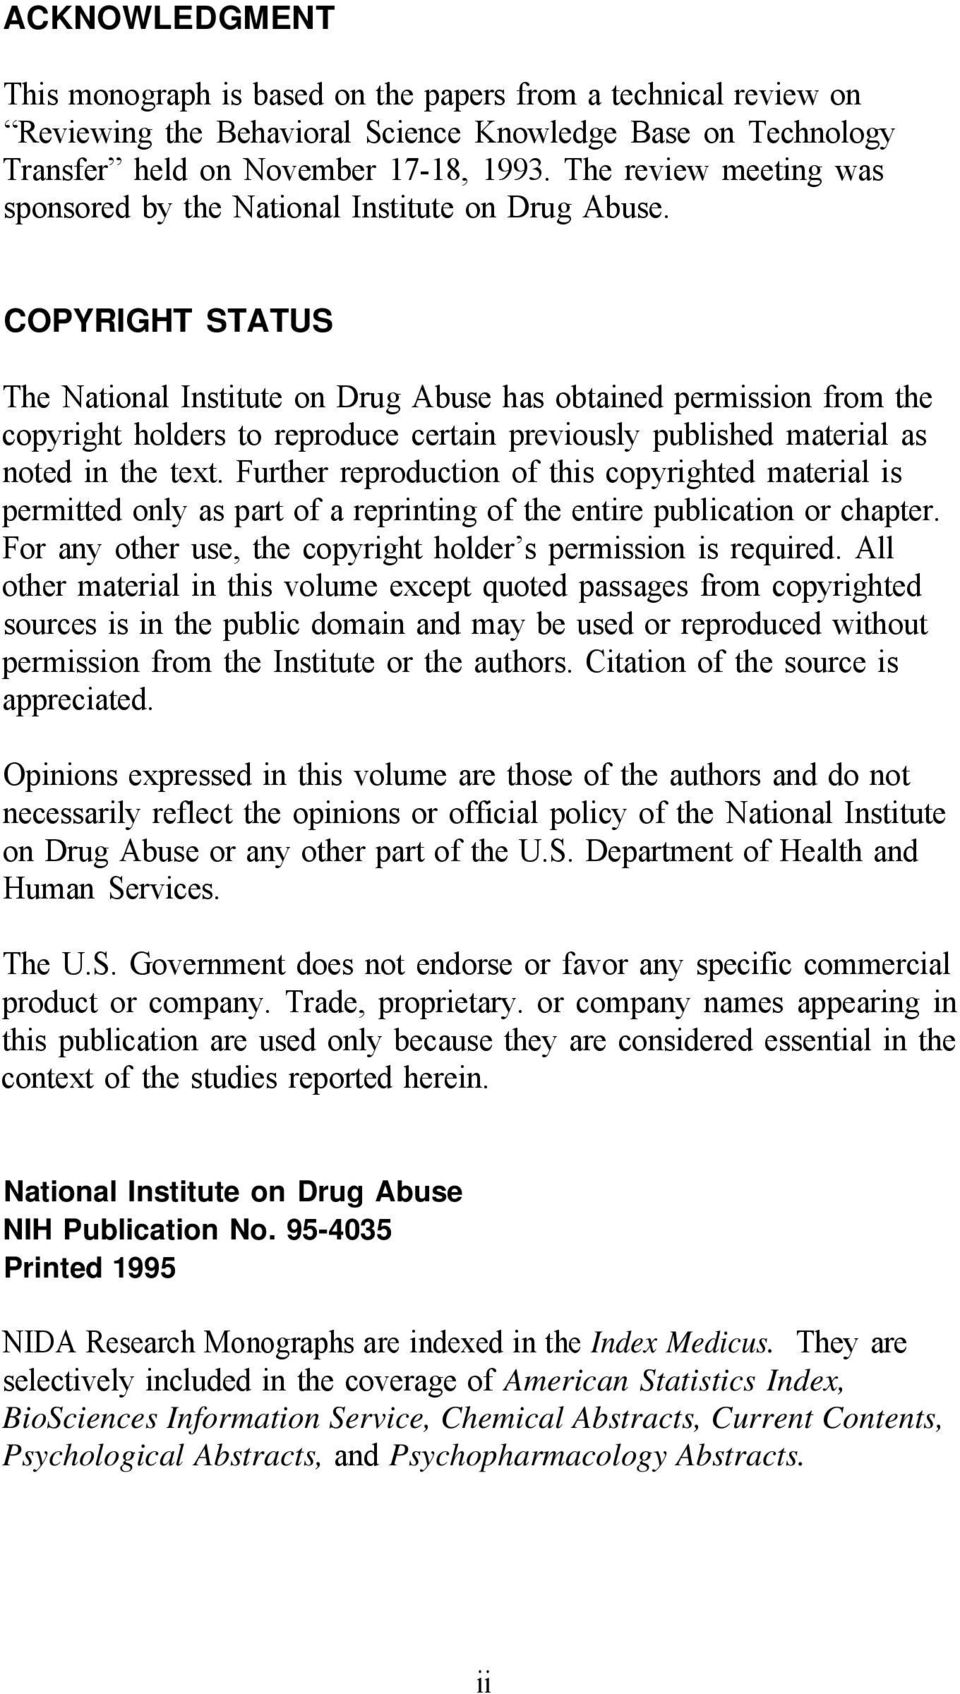 COPYRIGHT STATUS The National Institute on Drug Abuse has obtained permission from the copyright holders to reproduce certain previously published material as noted in the text.